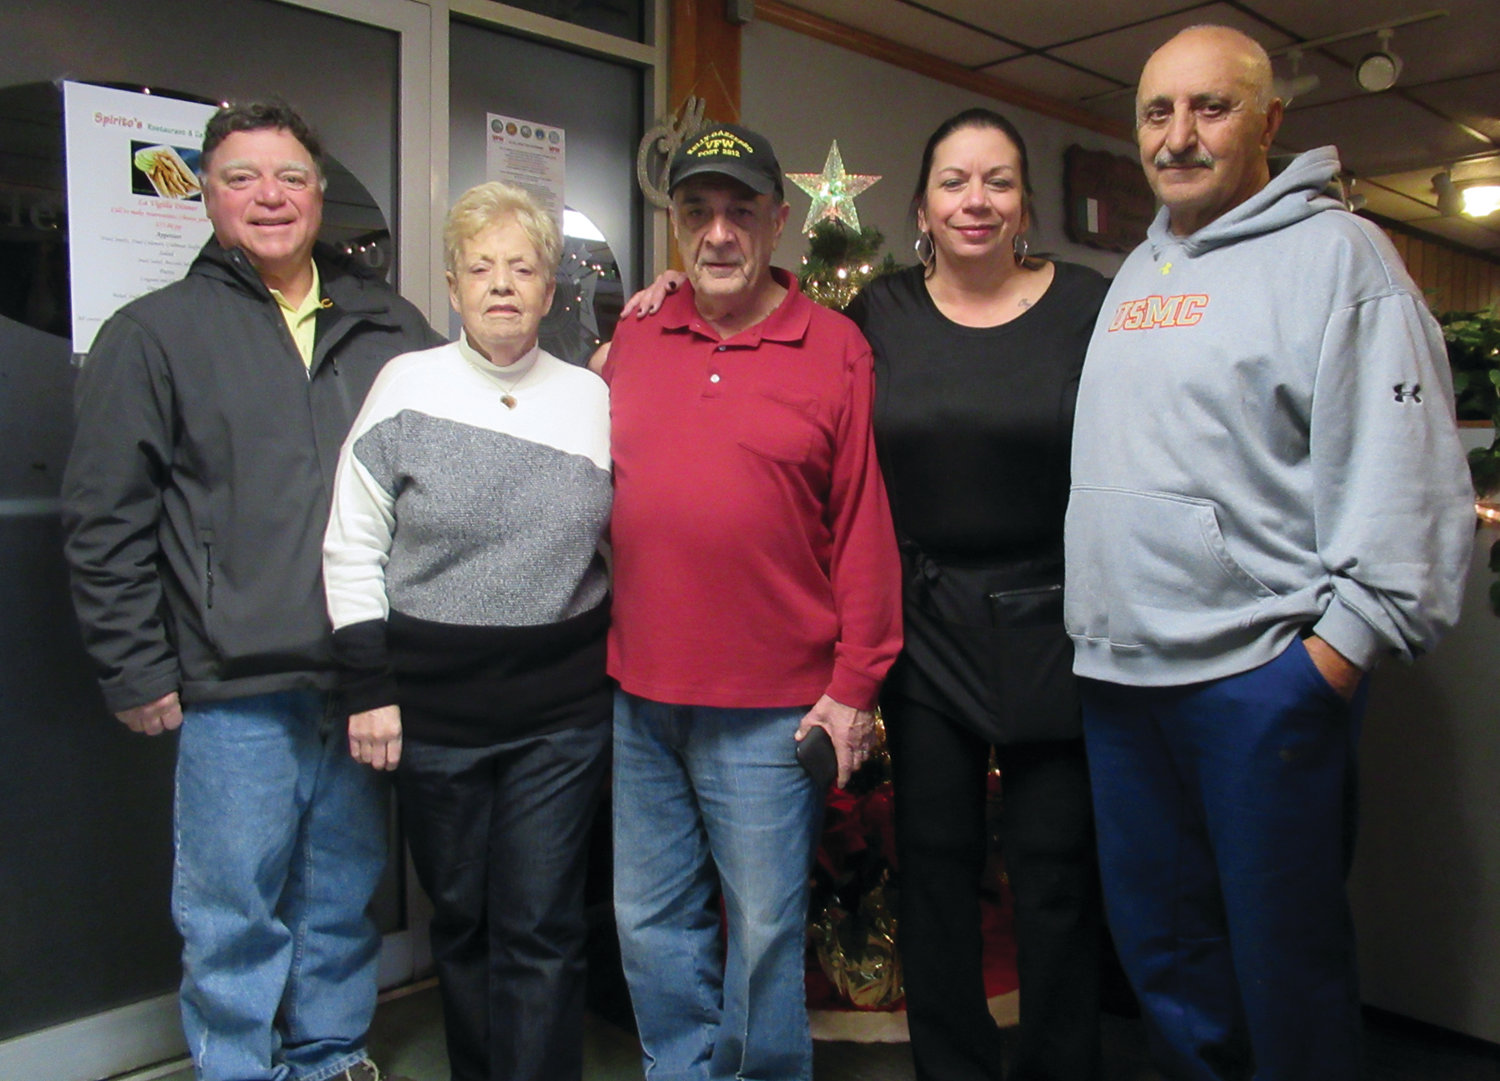 GAME GANG: Among the many people who are helping organize the Richard D. Salzillo Memorial Game Dinner that will be held on Sunday, Jan. 26, 2020, are, from left, Steven Placella, Geri Spirito, Kelley-Gazzerro VFW Post 2812 Commander Ron DiMaio, Jackie Brodeur and Vin LaFazia.